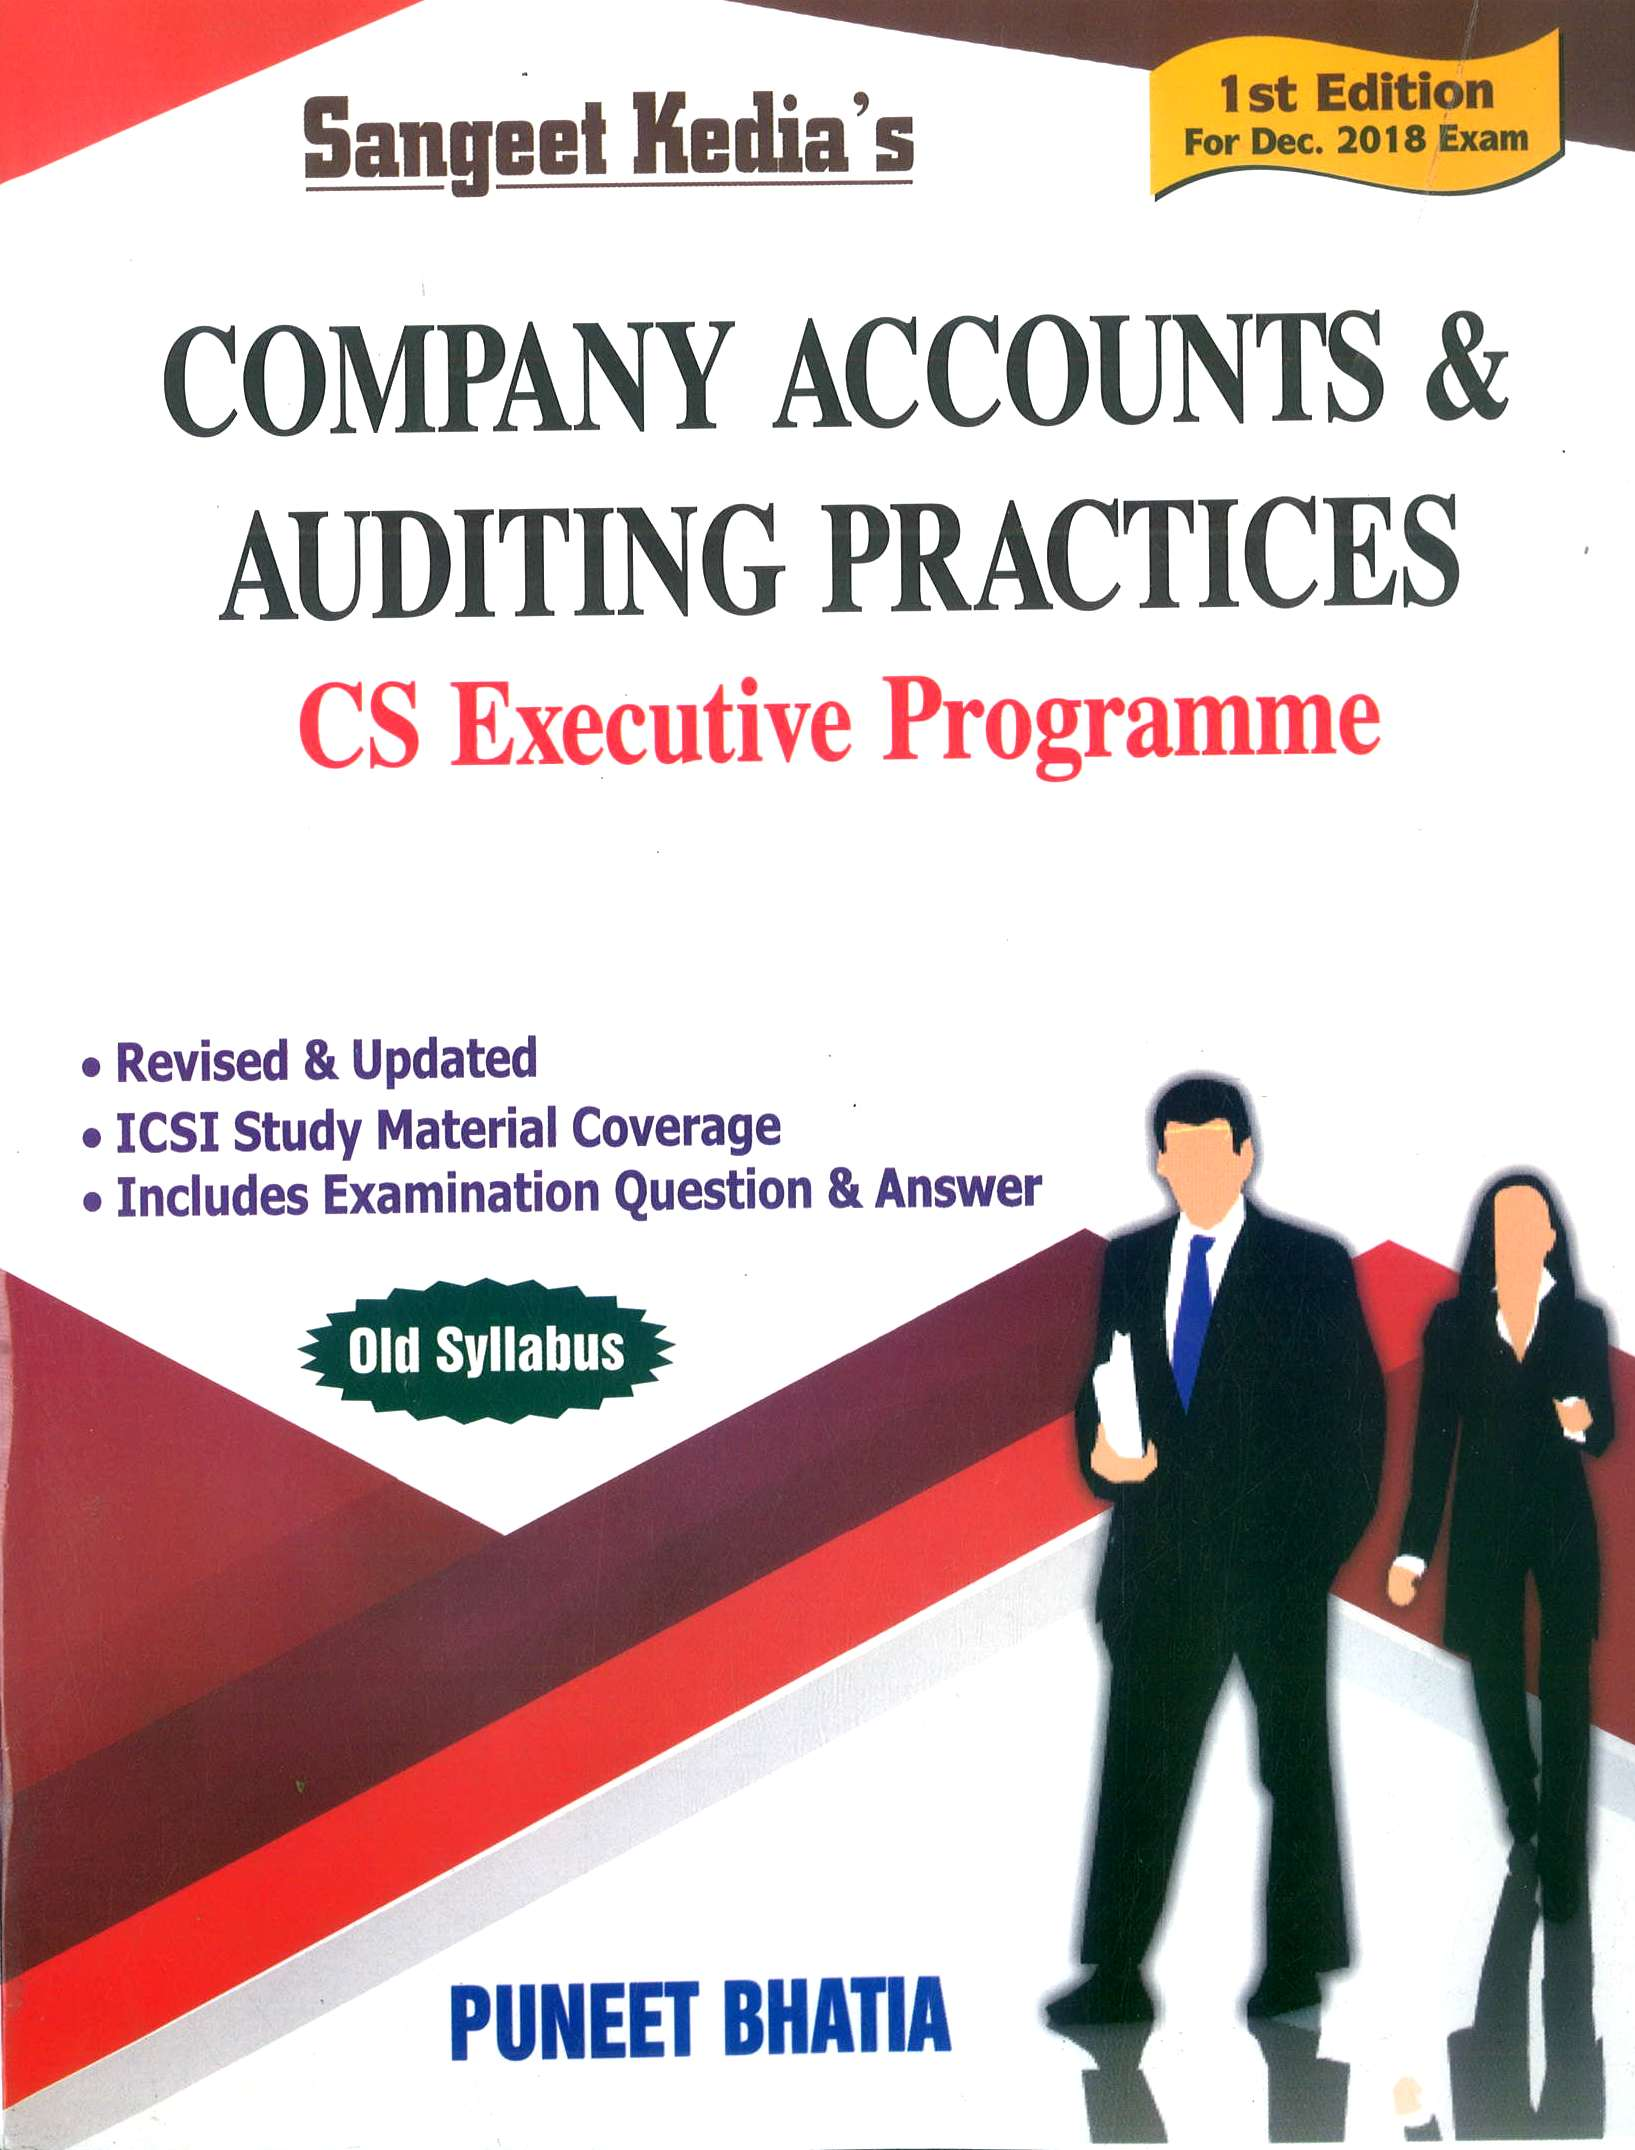 Sangeet Kedia Company Accounts & Auditing Practices For CS Executive By Puneet Bhatia Applicable For Dec 2018 (Pooja Law House Publishing) Edition 1st 2018